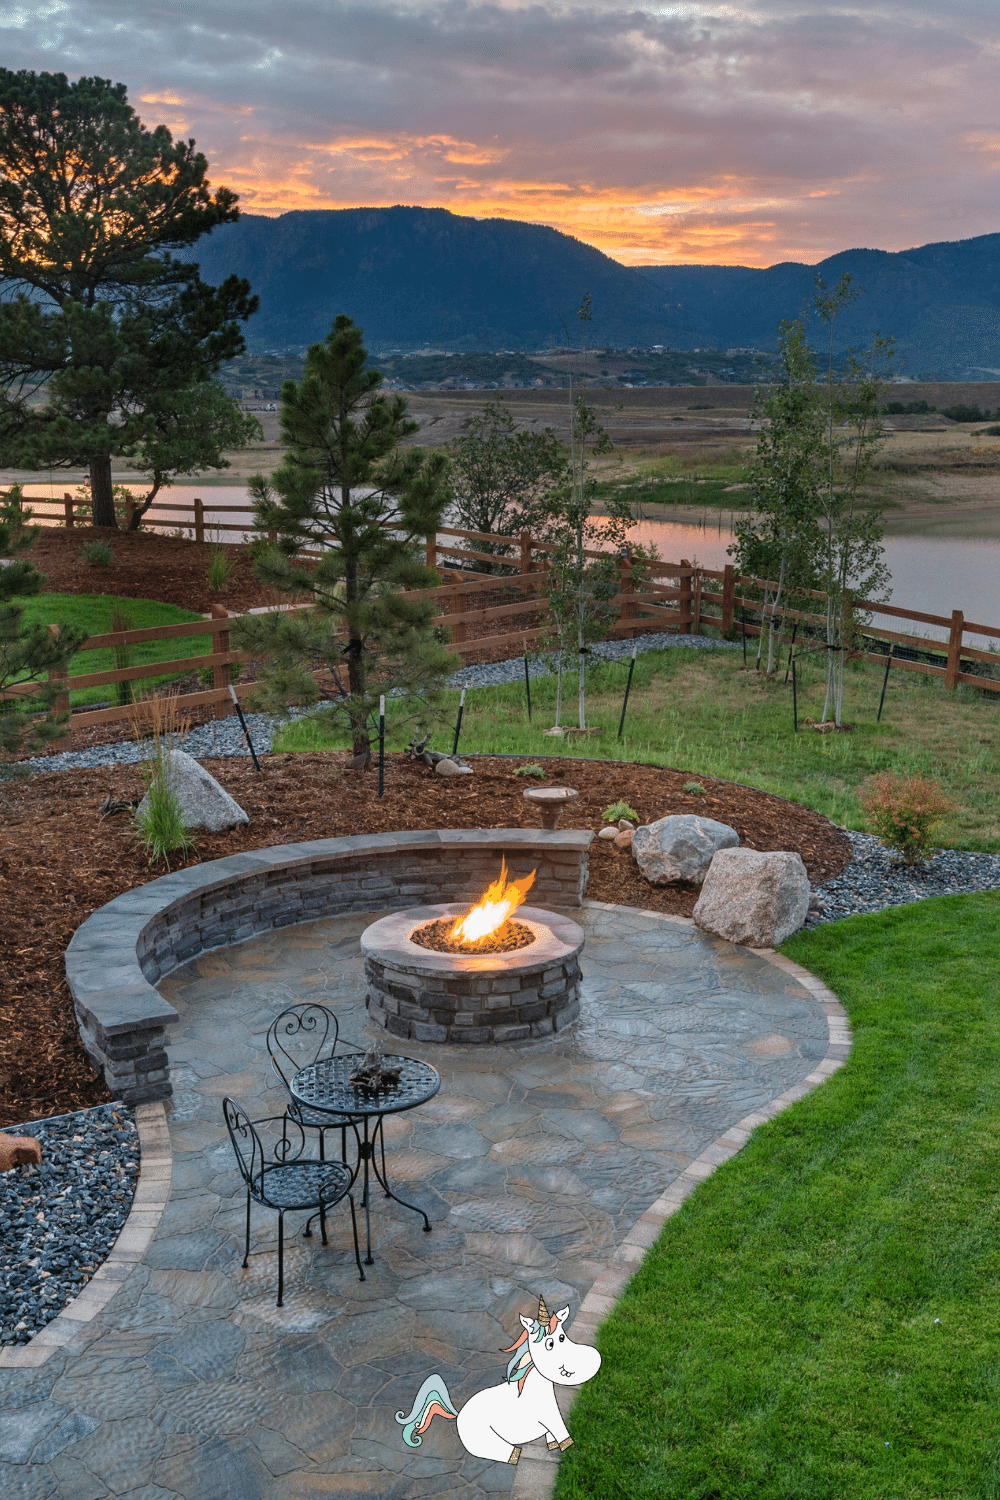 Fire pit with paved area